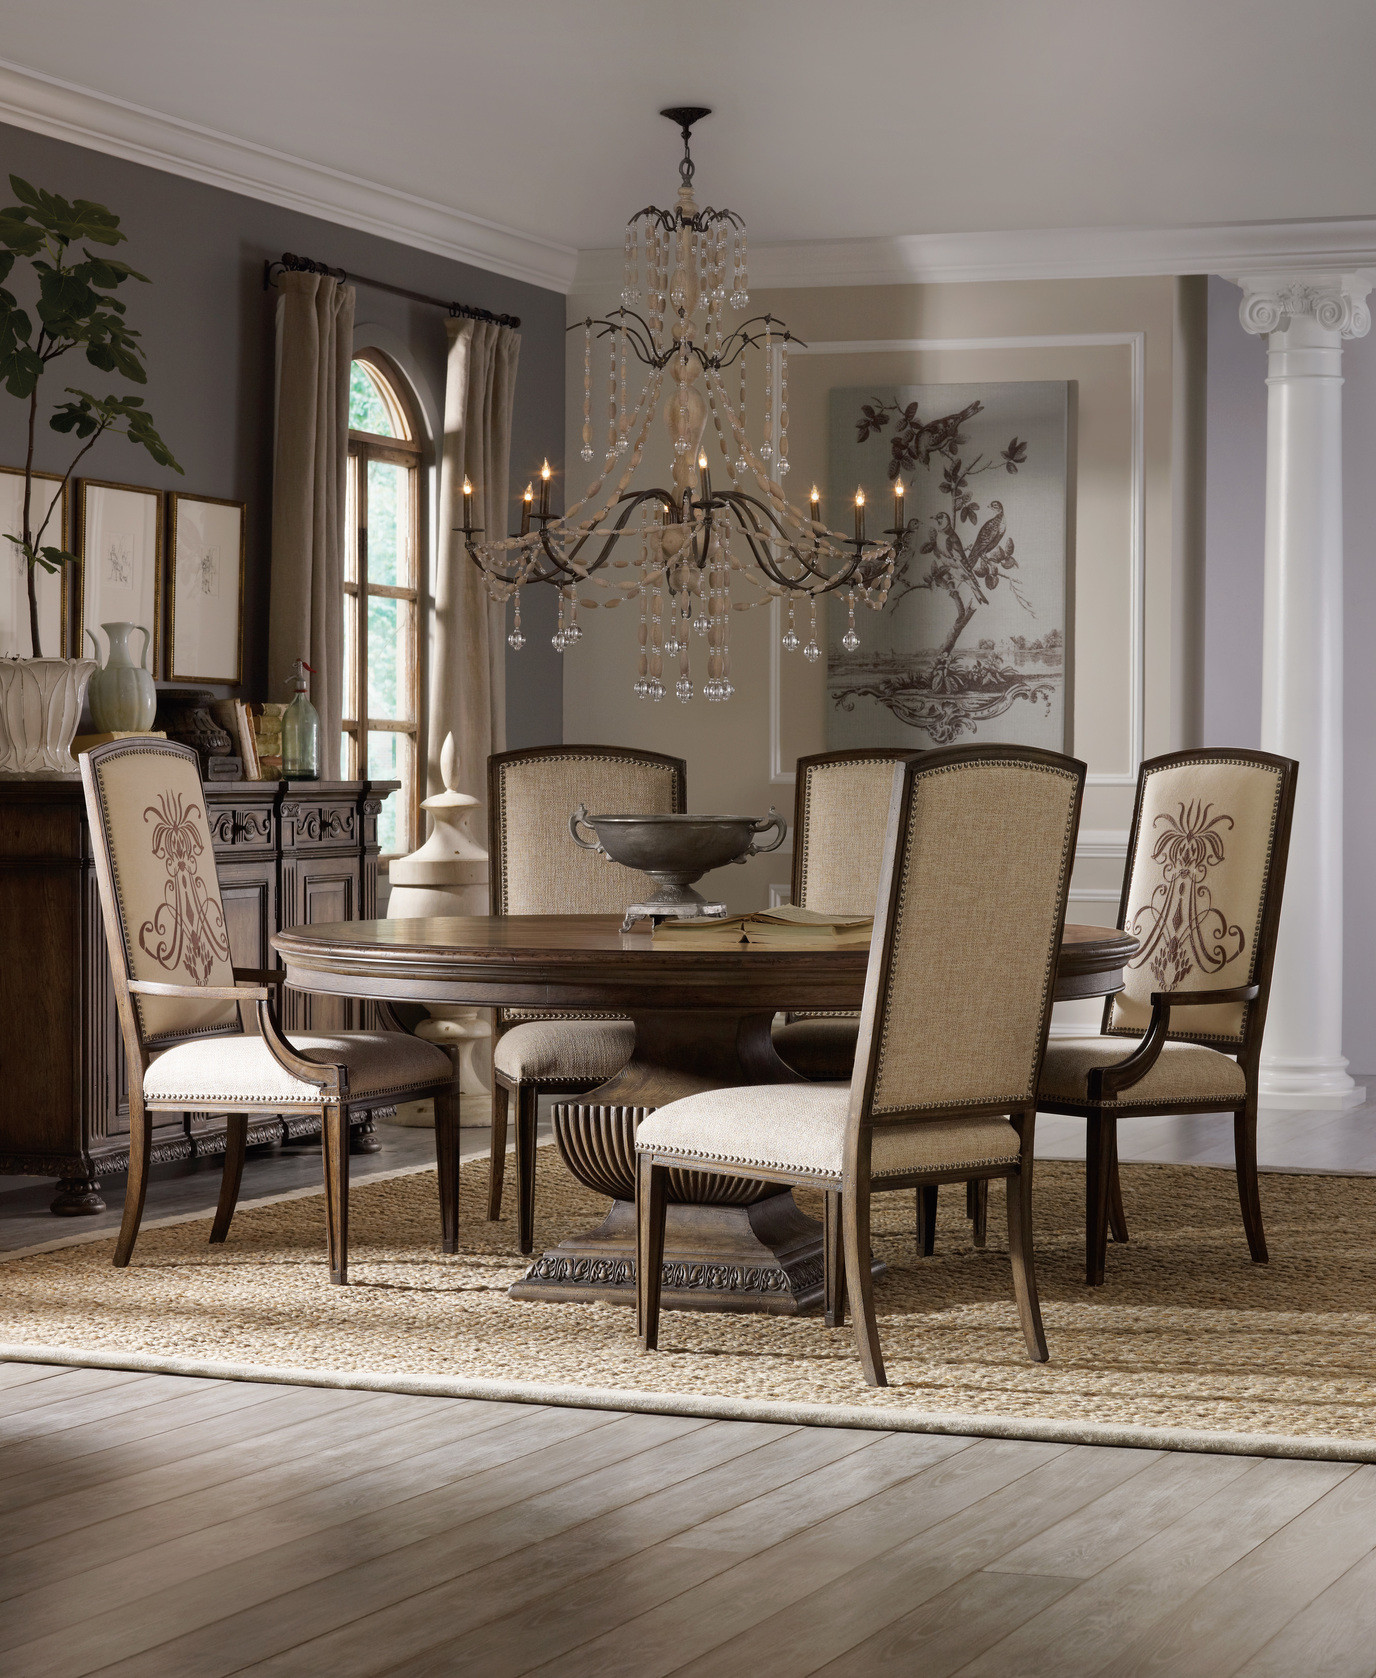 Best ideas about Dining Room Tables . Save or Pin Rhapsody 72 Inch Round Table Dining Room Collection by Now.